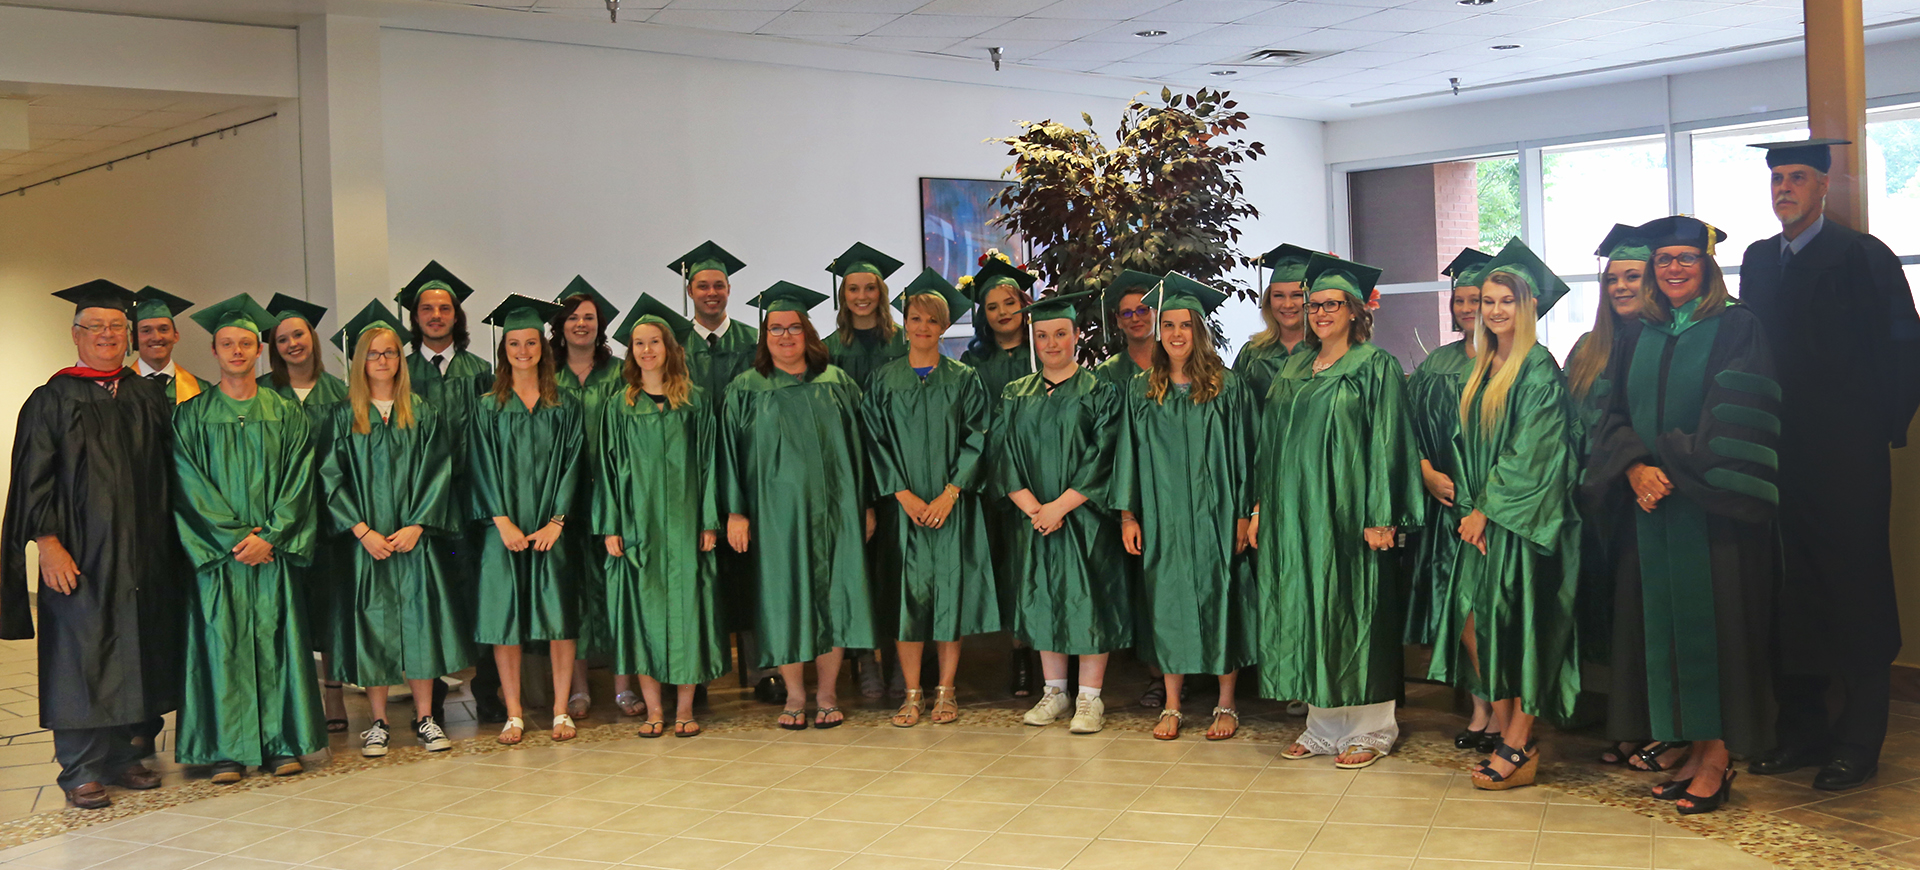 Wscc To Hold Commencements For Health Programs Washington State